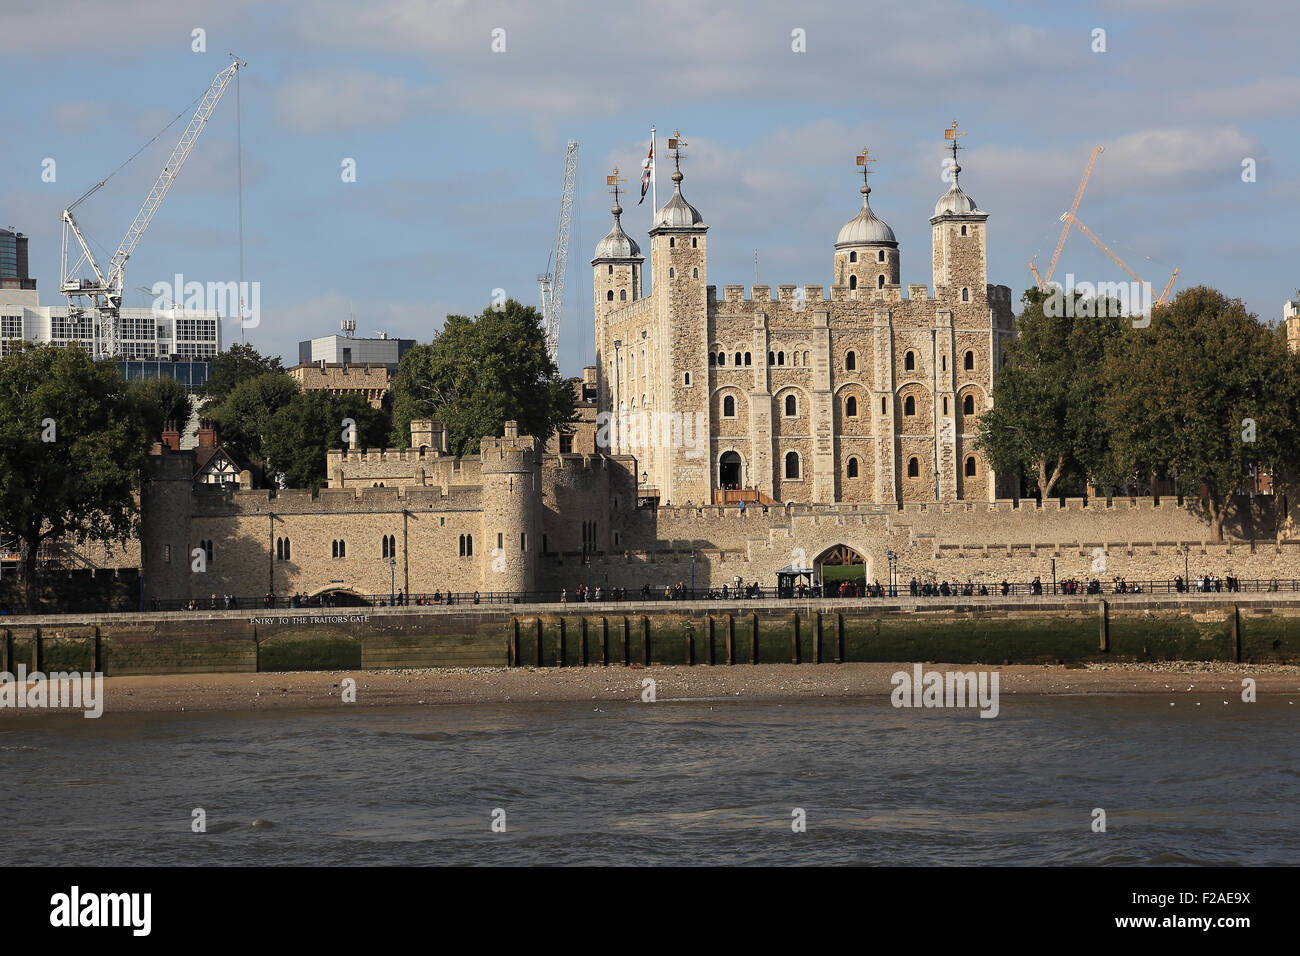 Tower of London and the Thames river, London, England - Stock Image